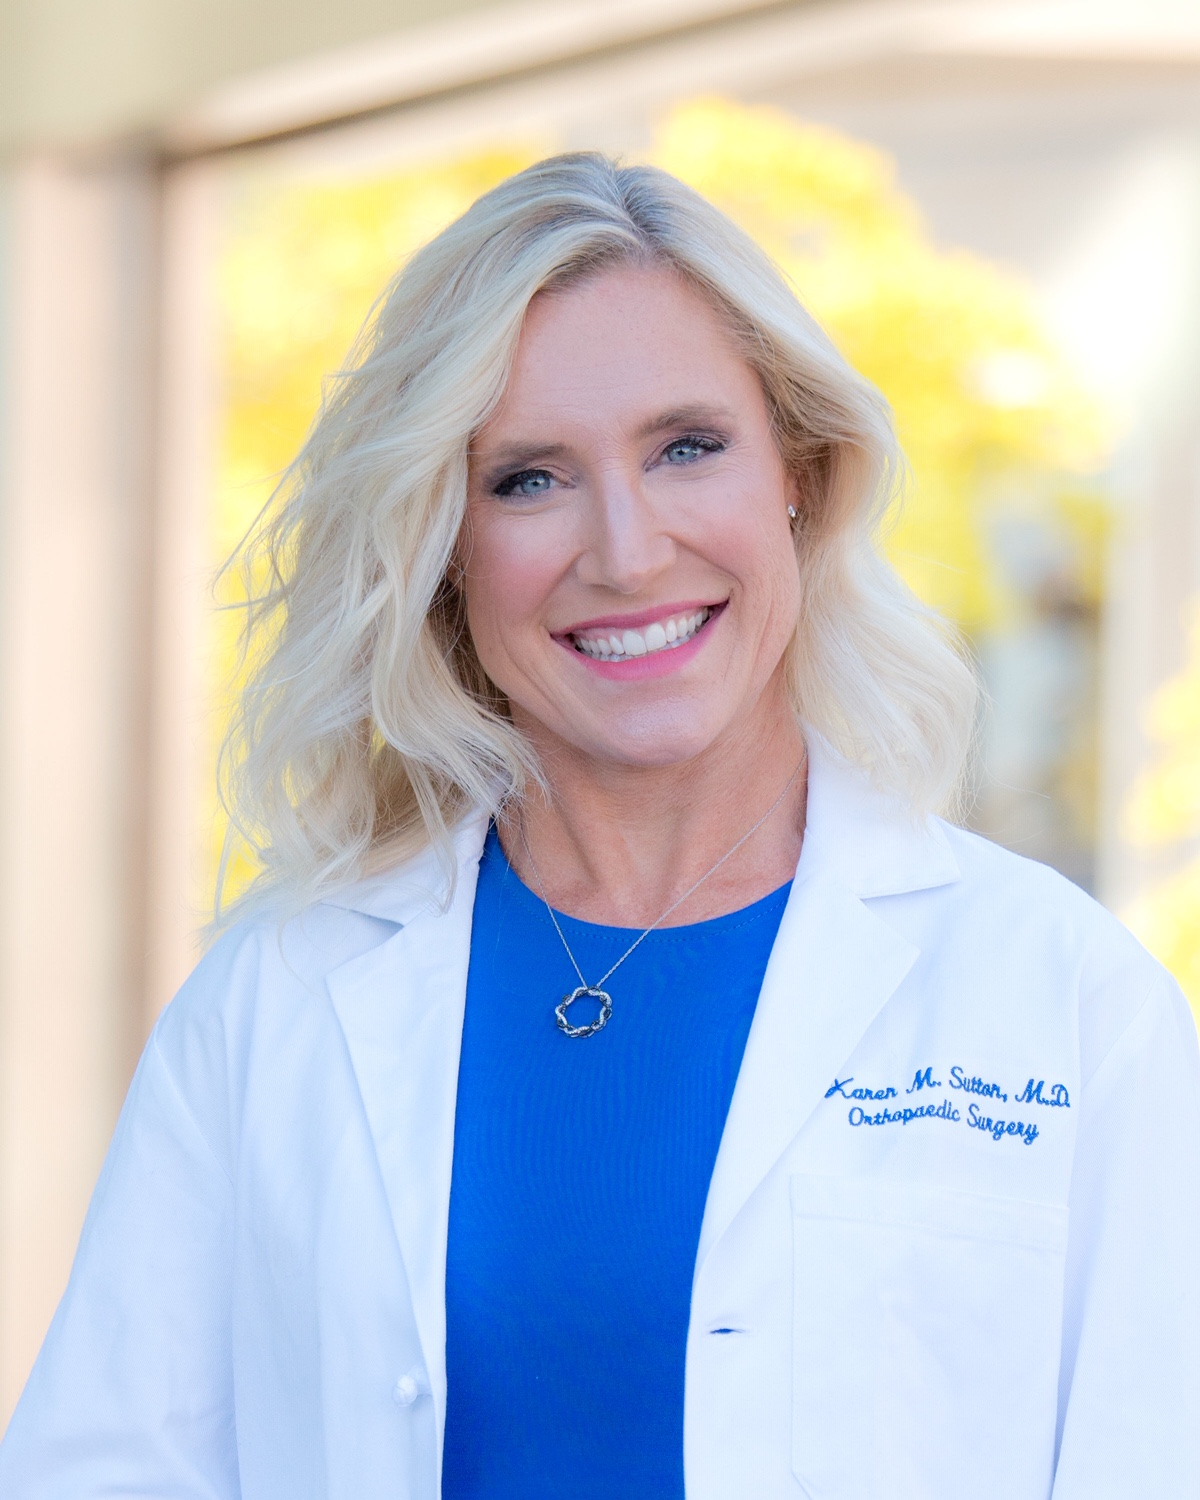 Sports Medicine Surgeon, Hospital for Special Surgery -